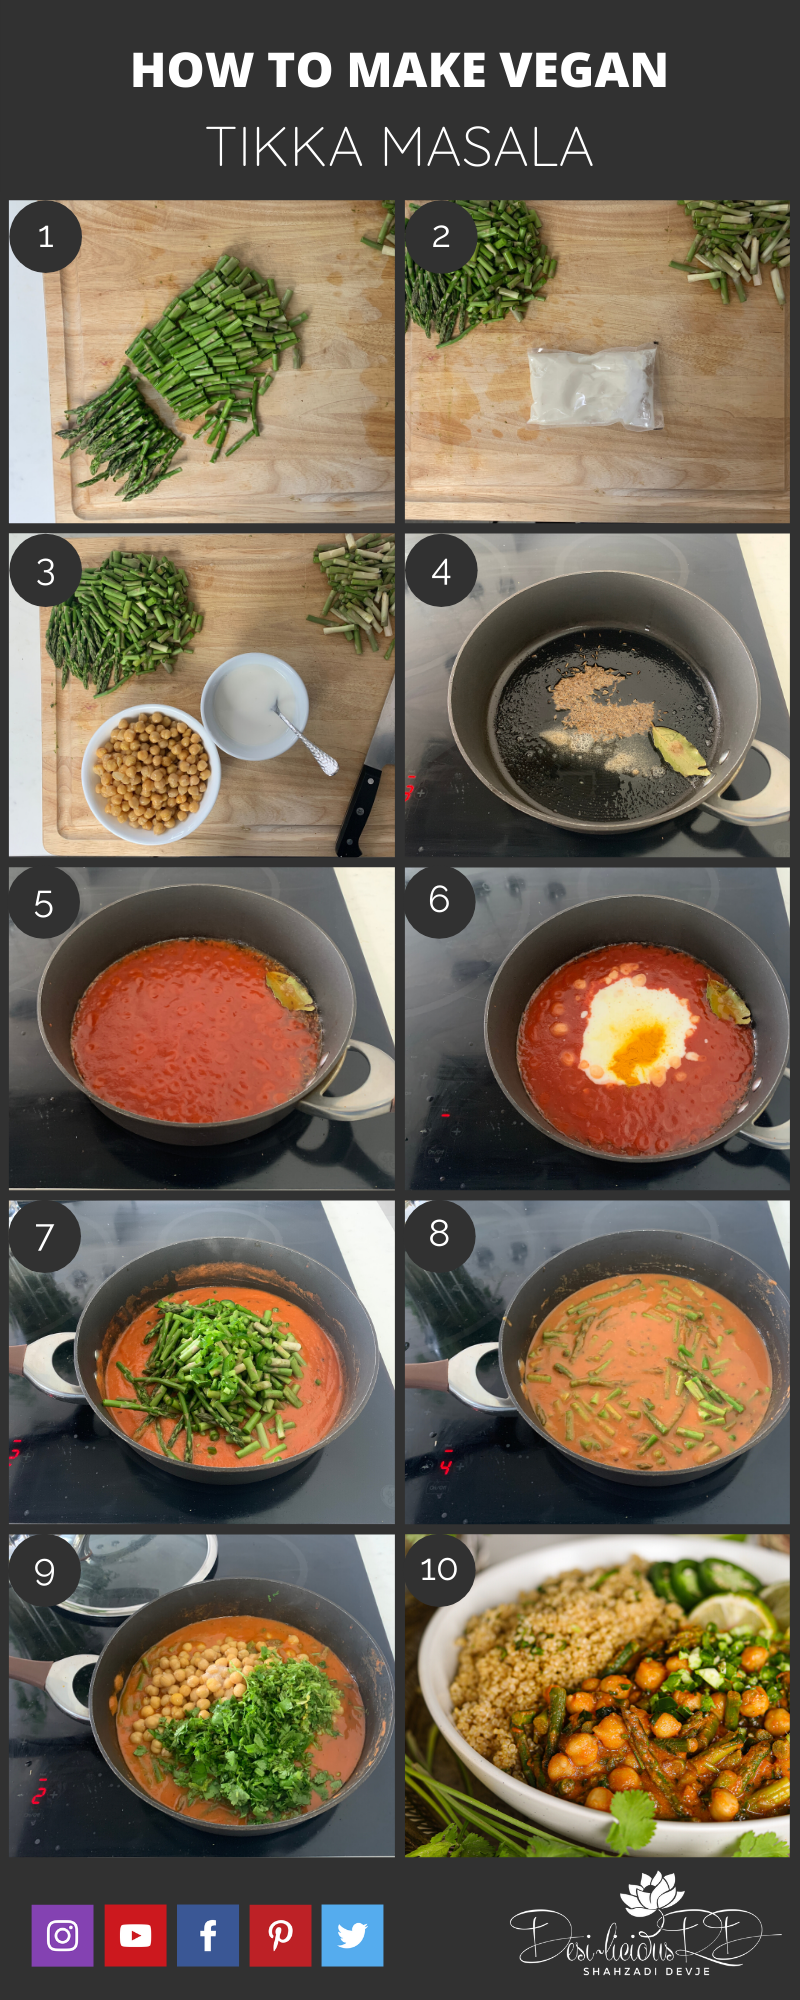 step by step preparation shots of vegan tikka masala recipe cooked in a pan on stovetop